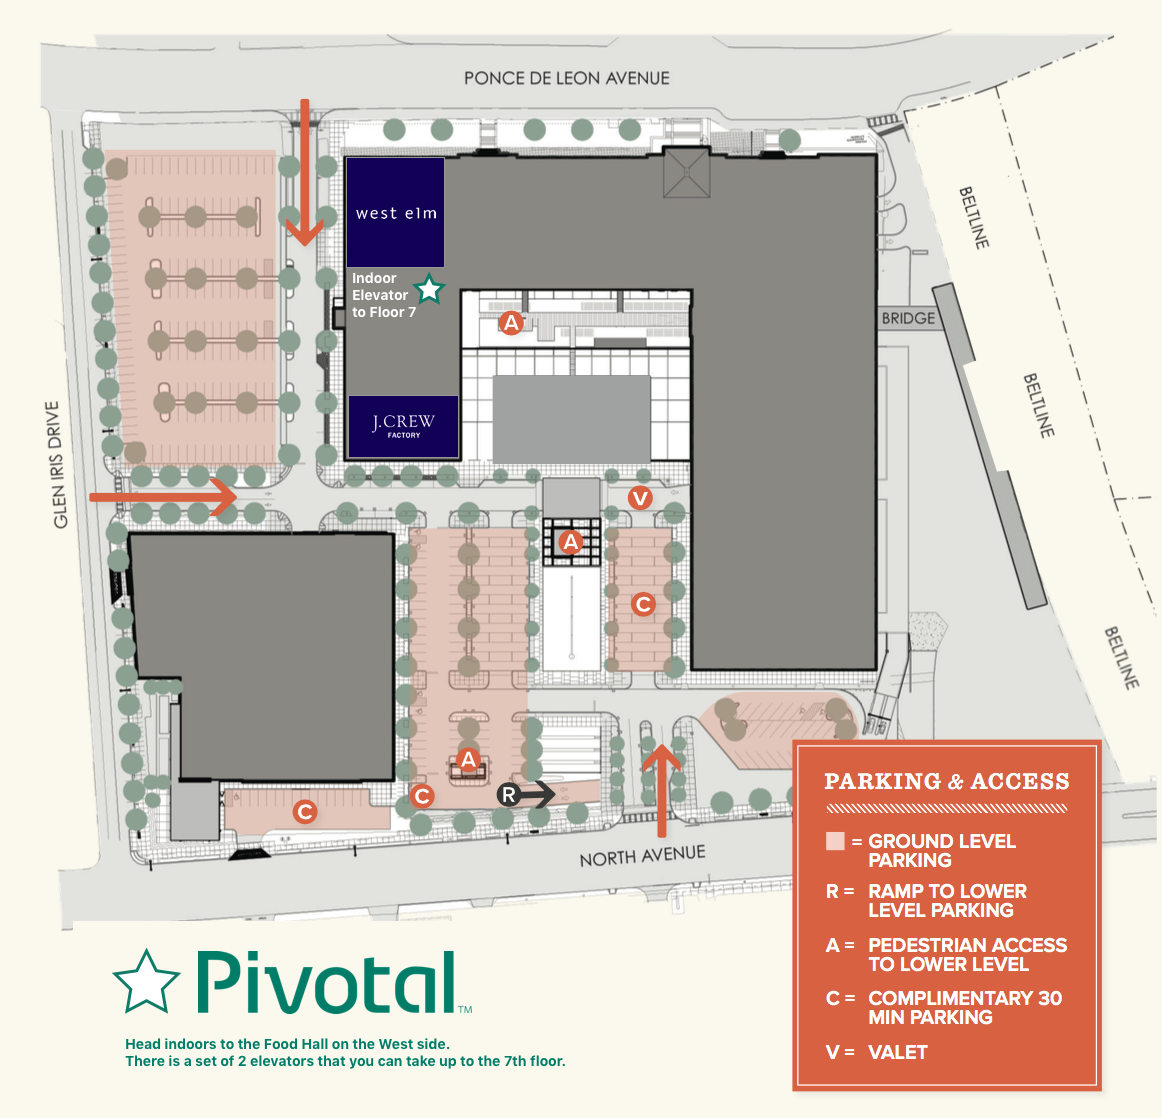 Pivotal Labs and Ponce City Market